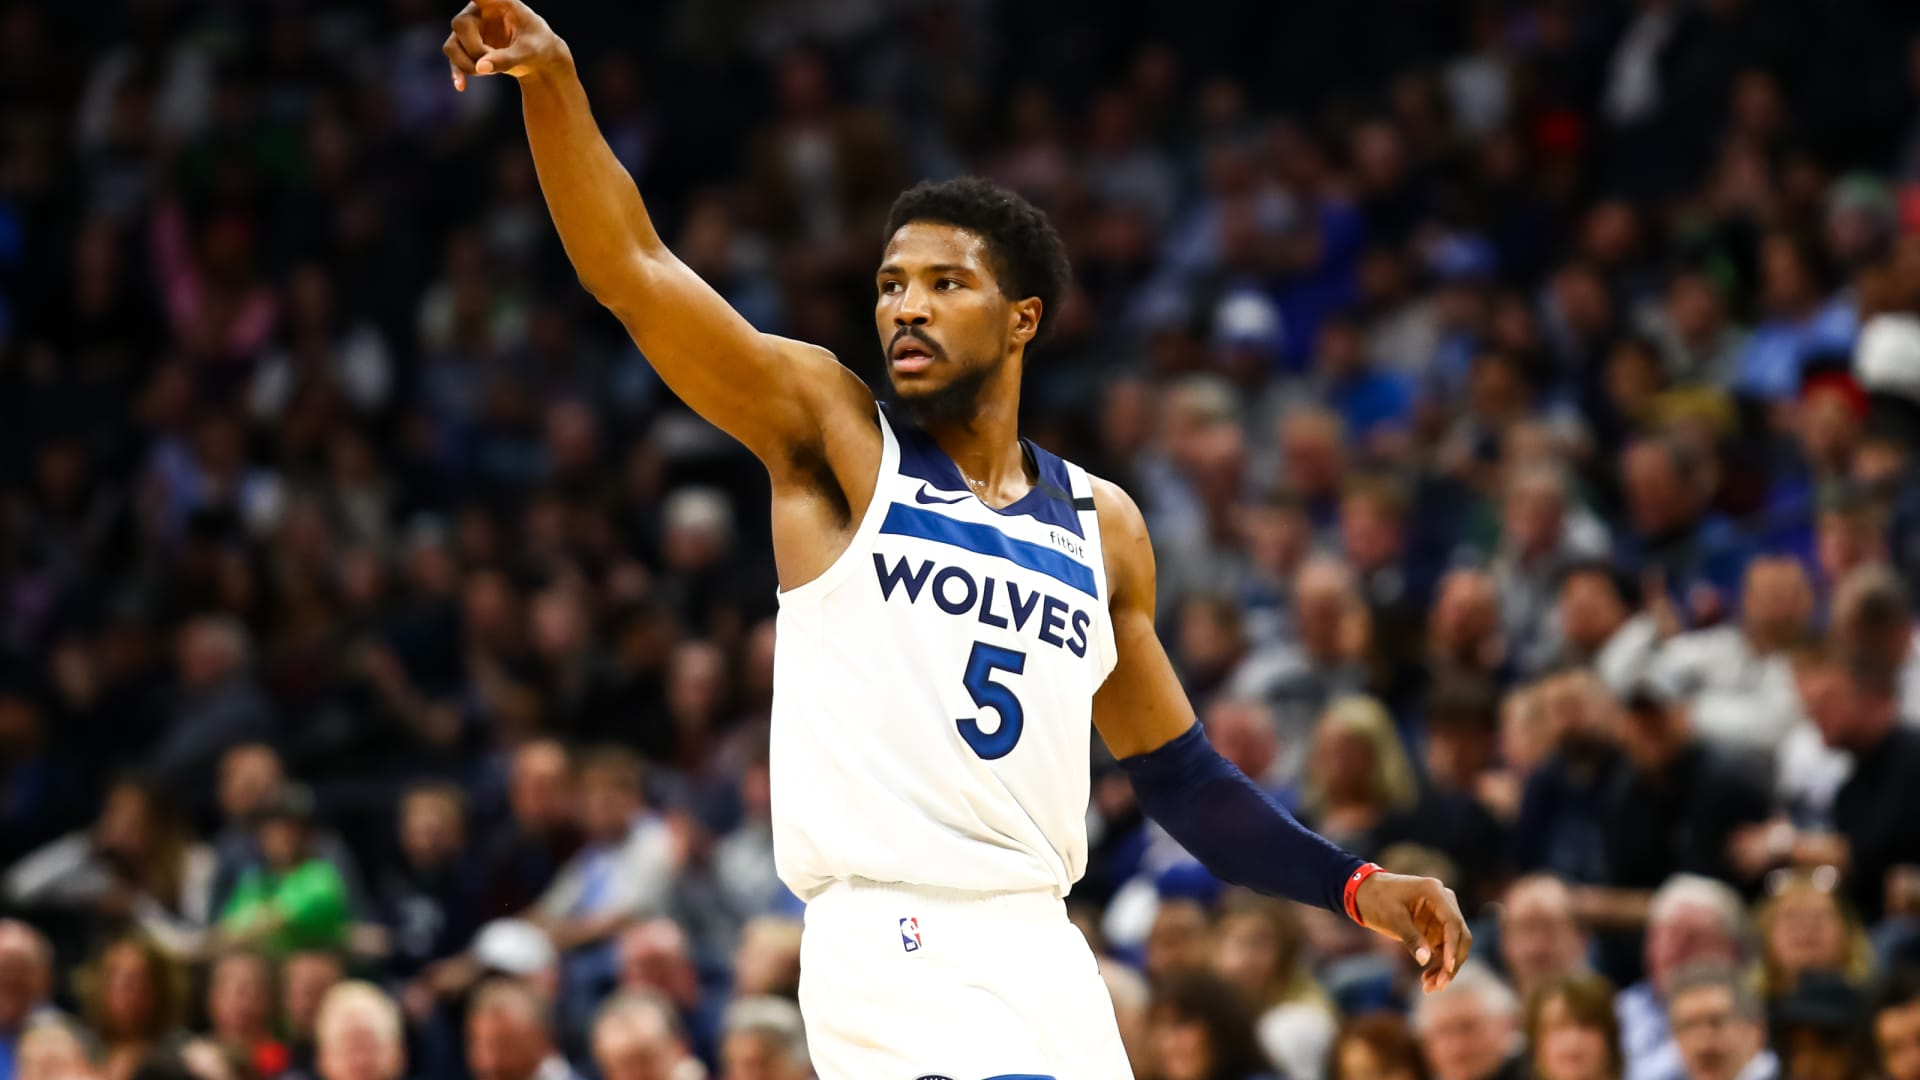 Minnesota Timberwolves at Nuggets: Odds, injuries and what to watch for